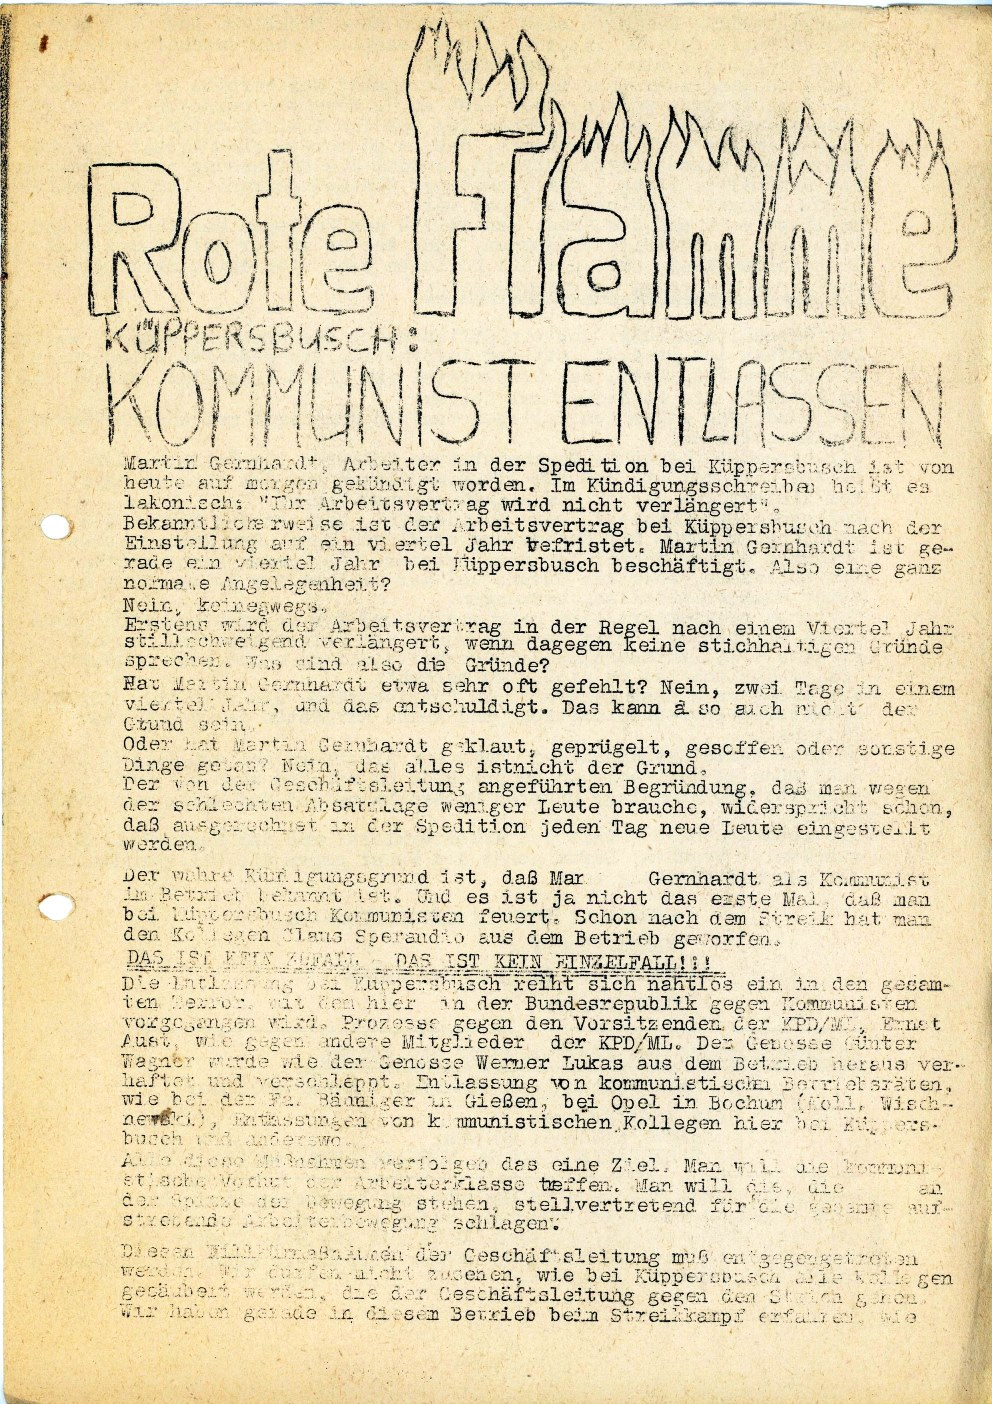 Rote_Flamme_1973_03_01